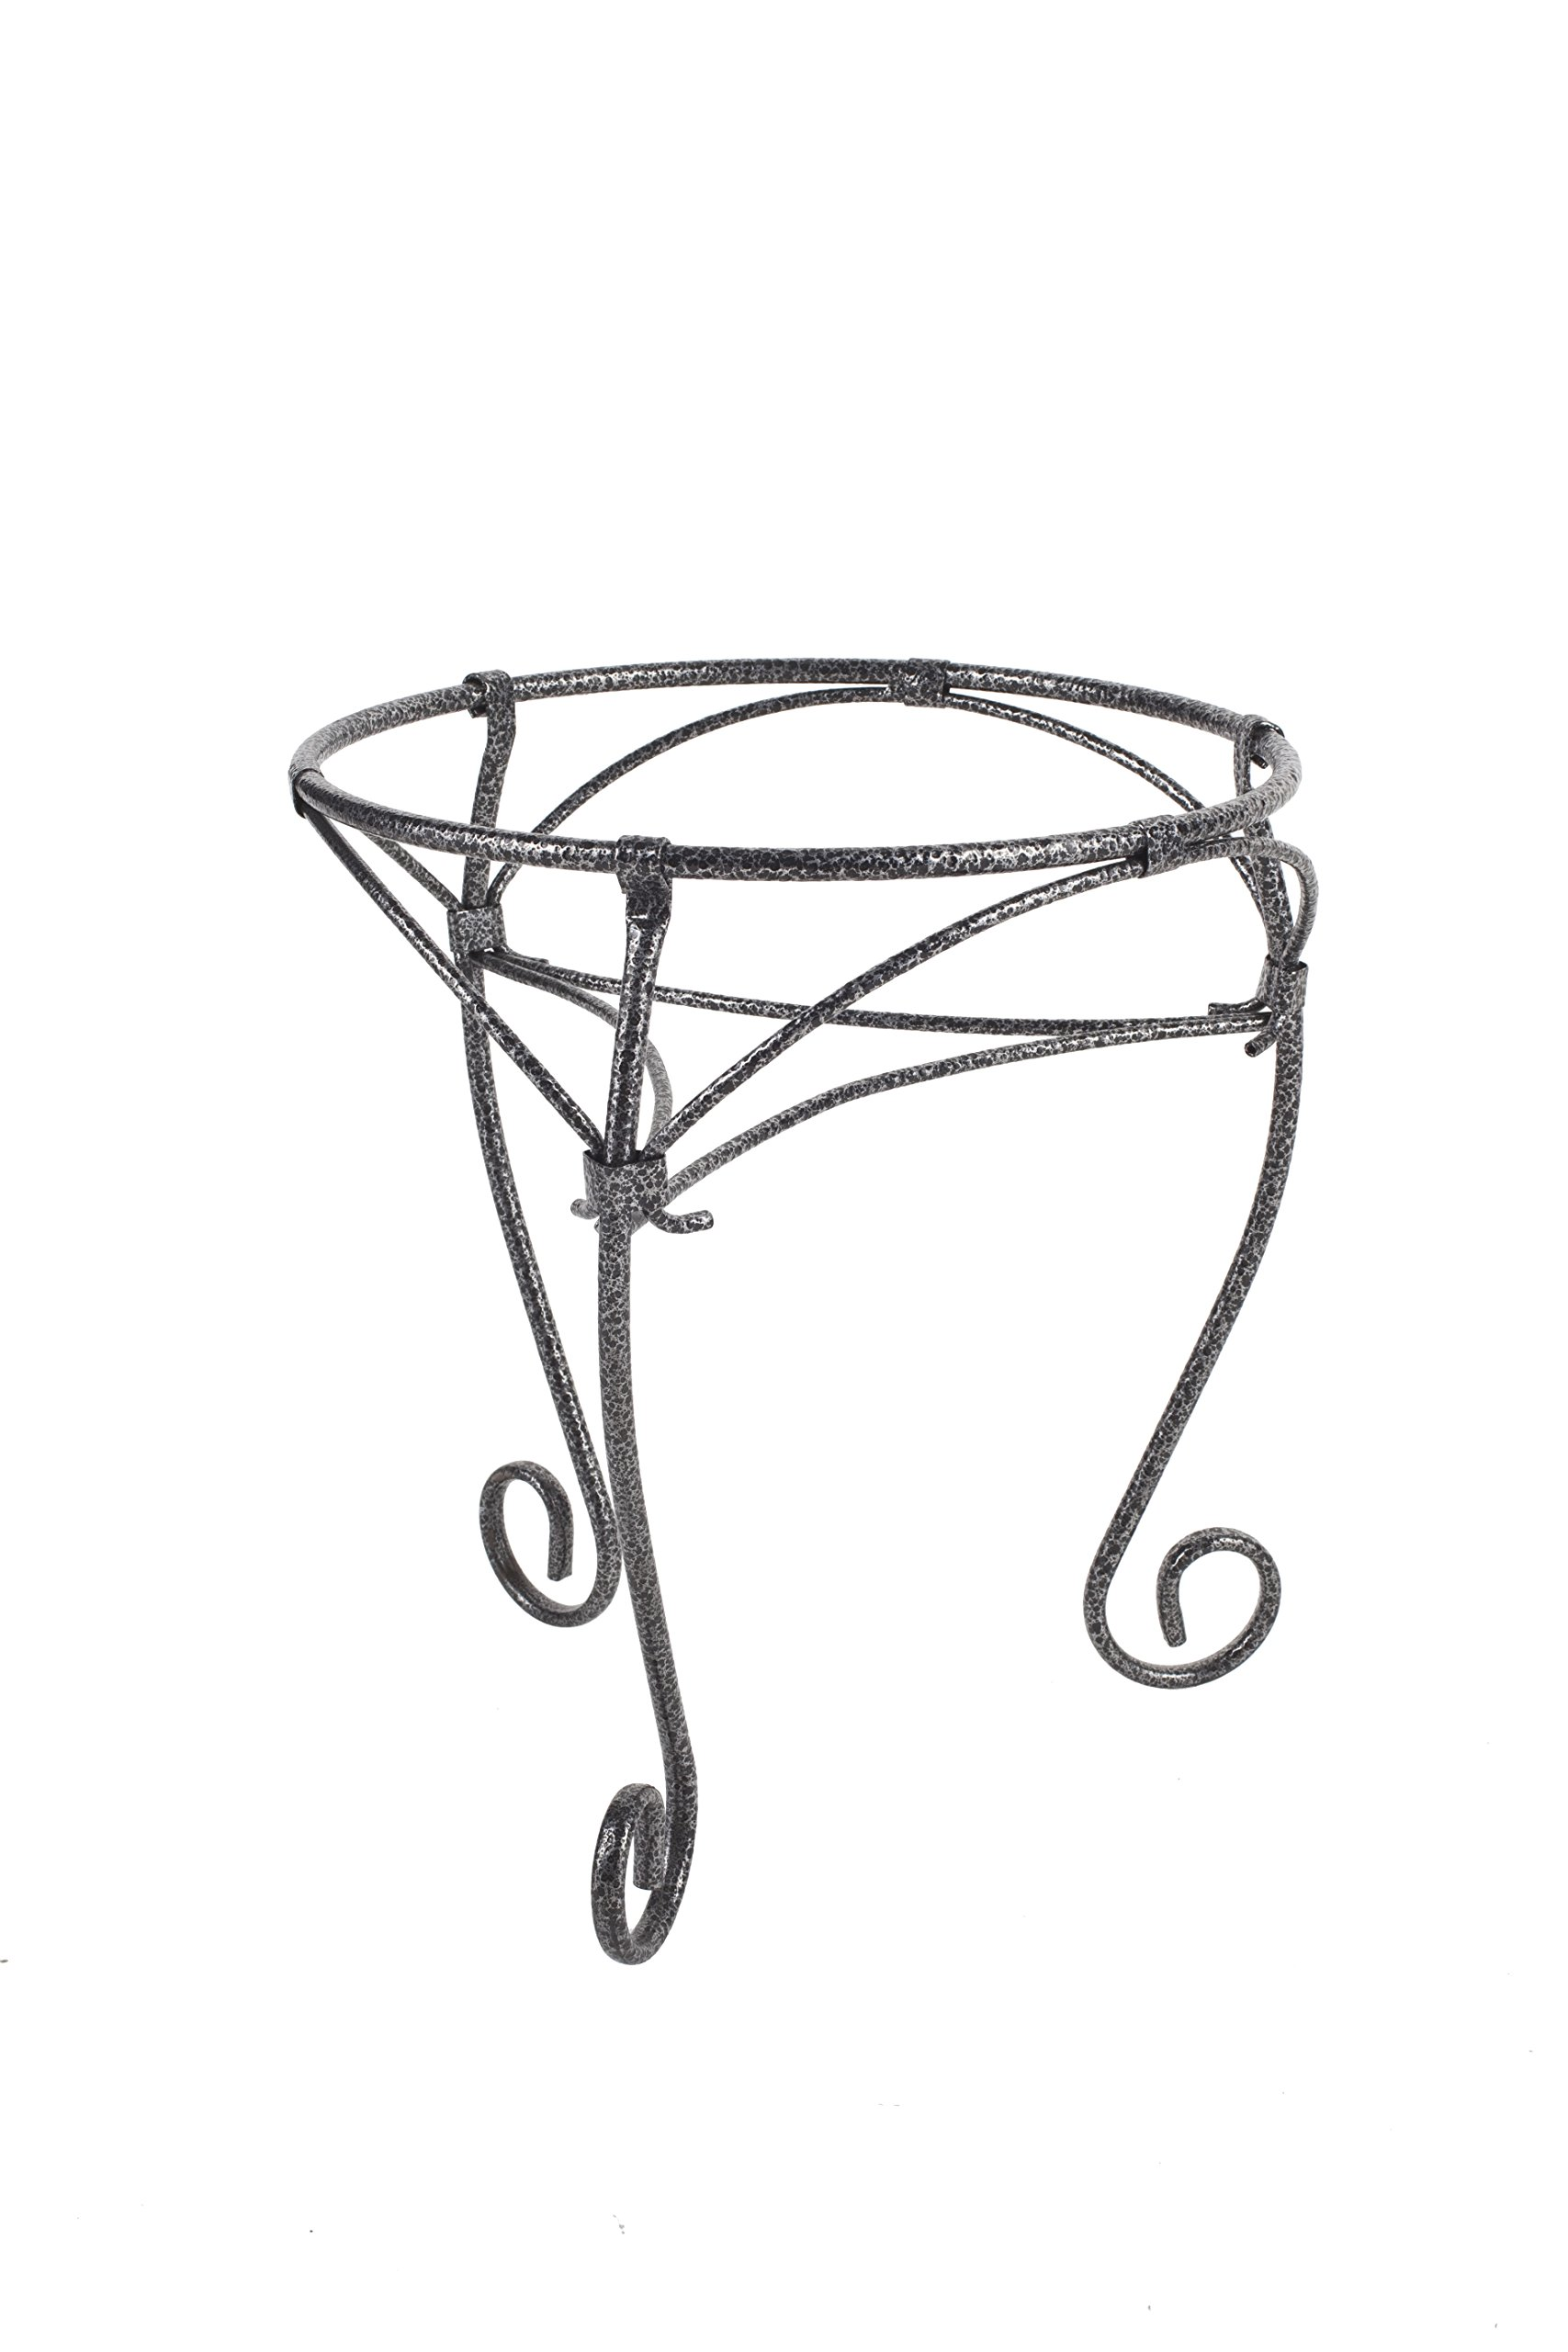 Plant Stands 15'' w/3 legs Hammered Silver (10 pack) 15''